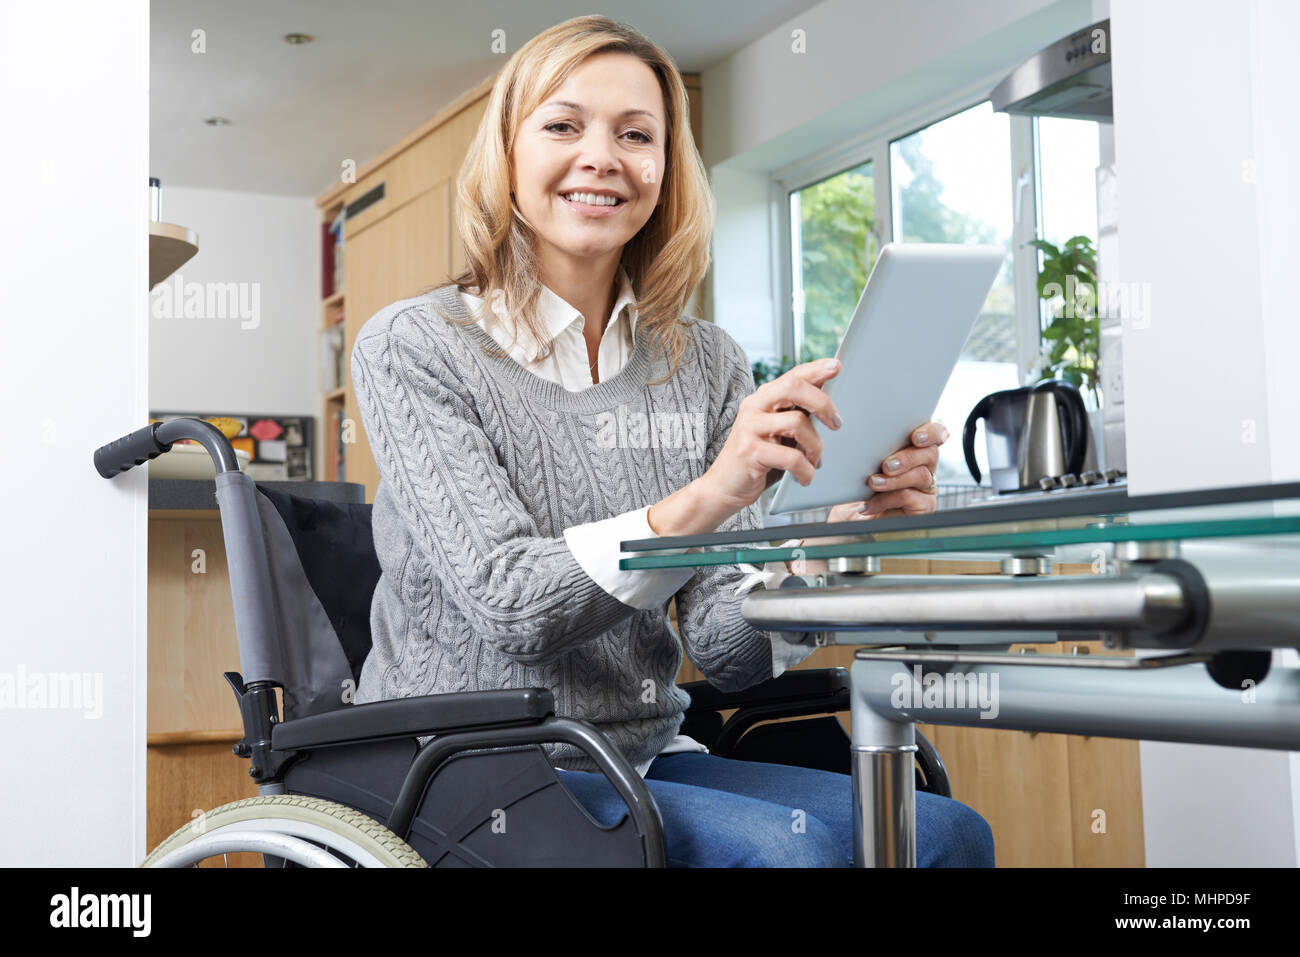 Disabled Woman In Wheelchair Using Digital Tablet At Home - Stock Image